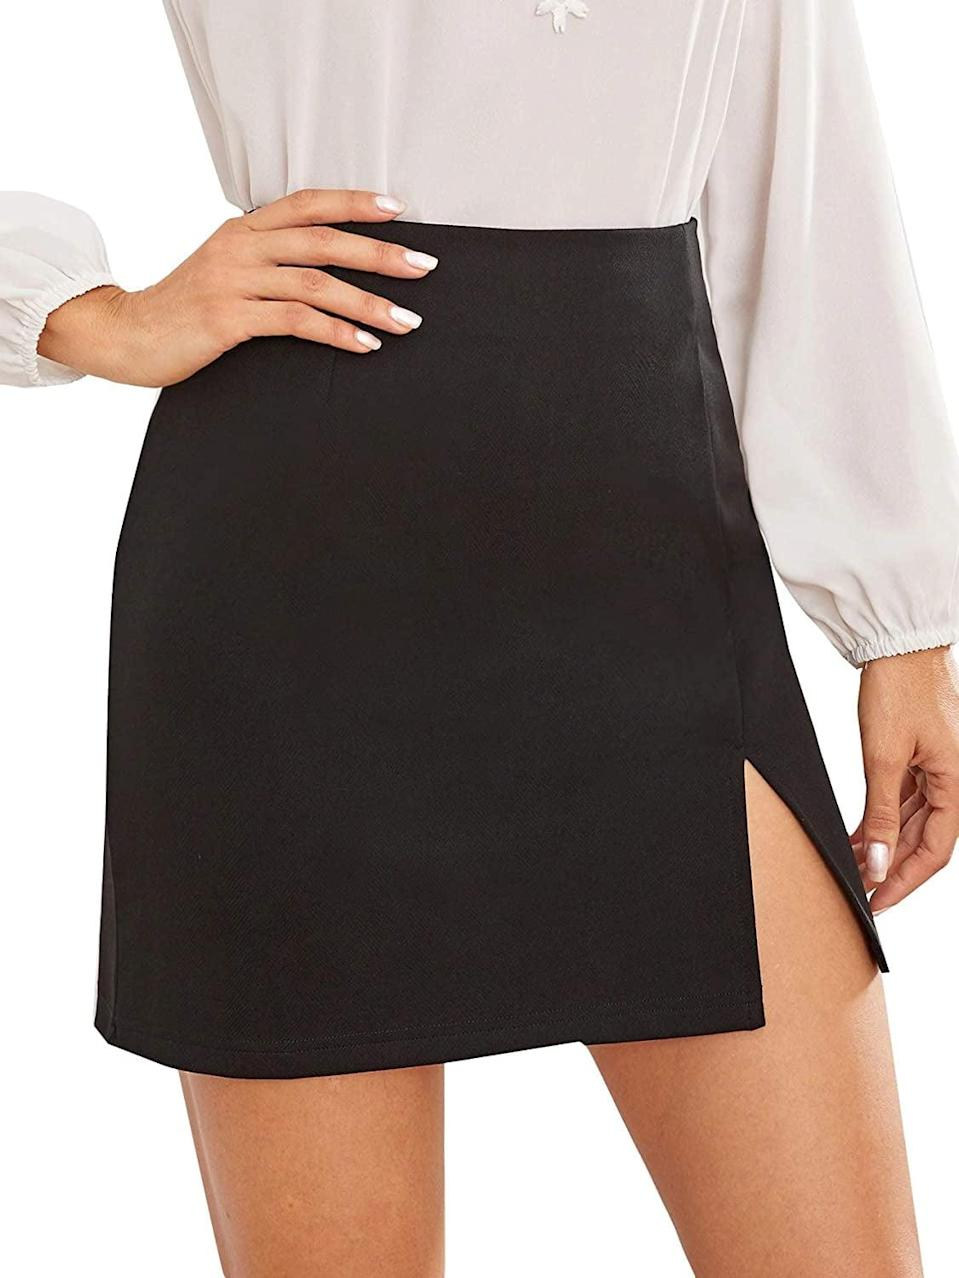 <p>If you're looking for something on the sexy side, then you can't go wrong with the <span>Summer Split Hem Zip Back Mini Skirt</span> ($10-$23).</p>